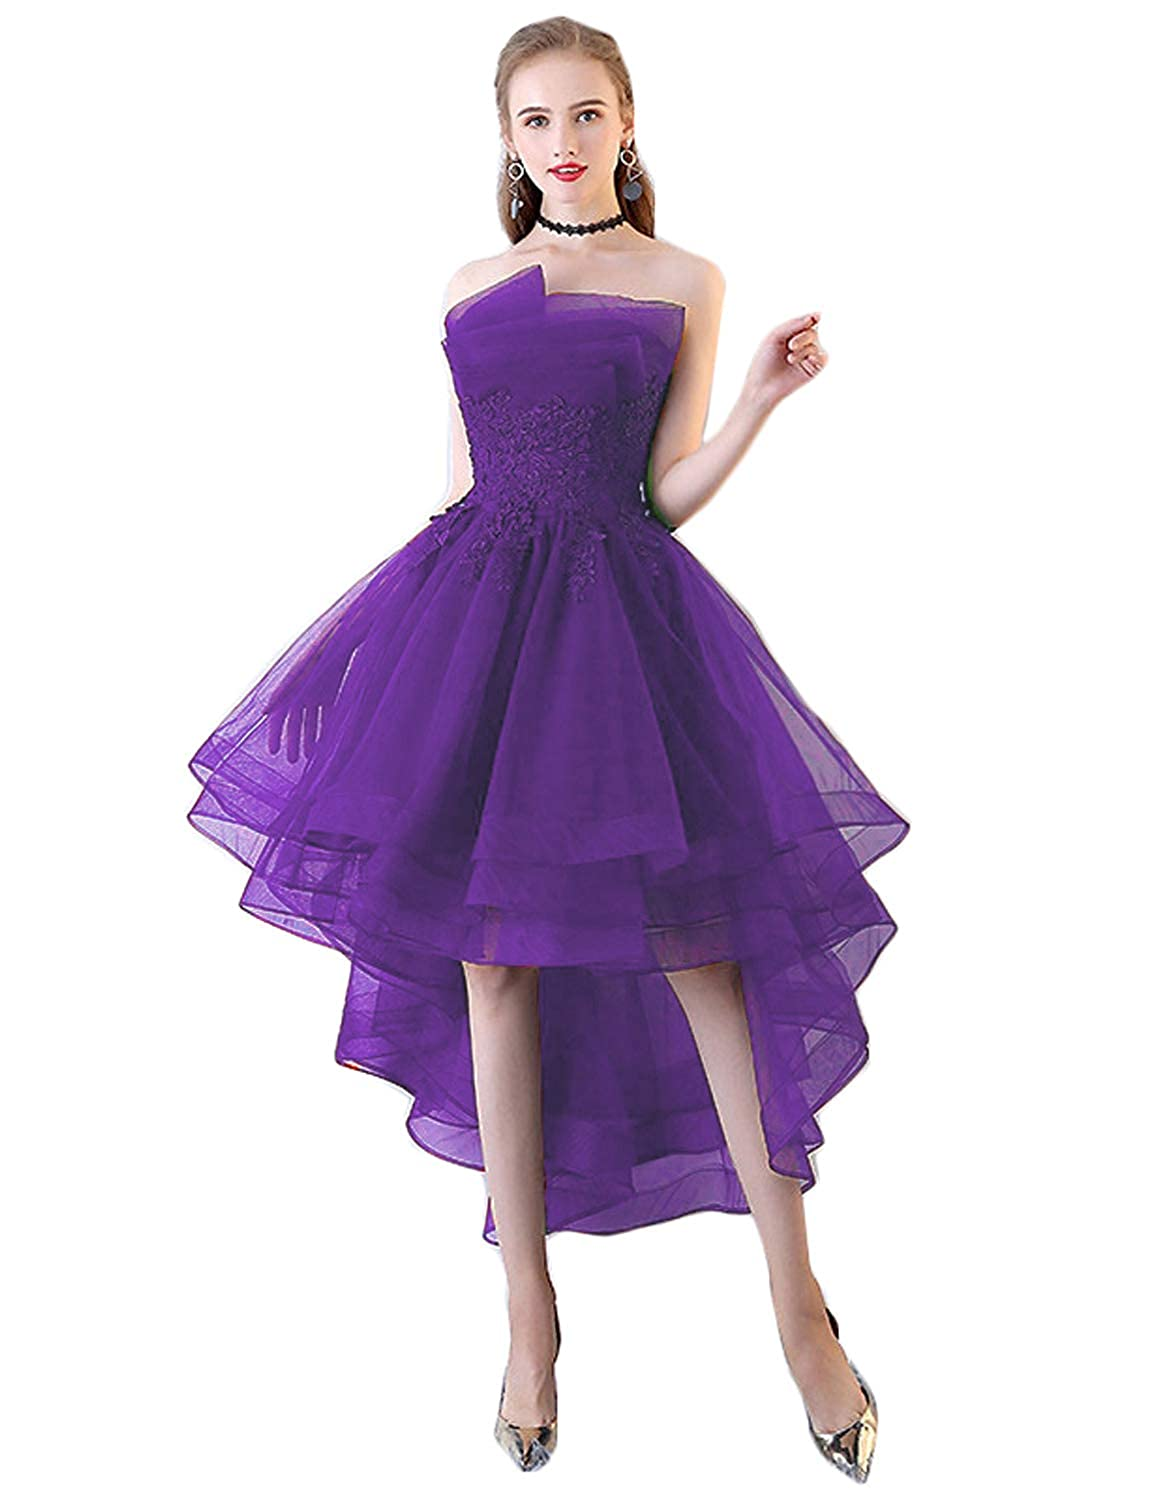 Lavender CIRCLEWLD Strapless Hi Low Homecoming Prom Dresses Multilayered Evening Party Gowns H82